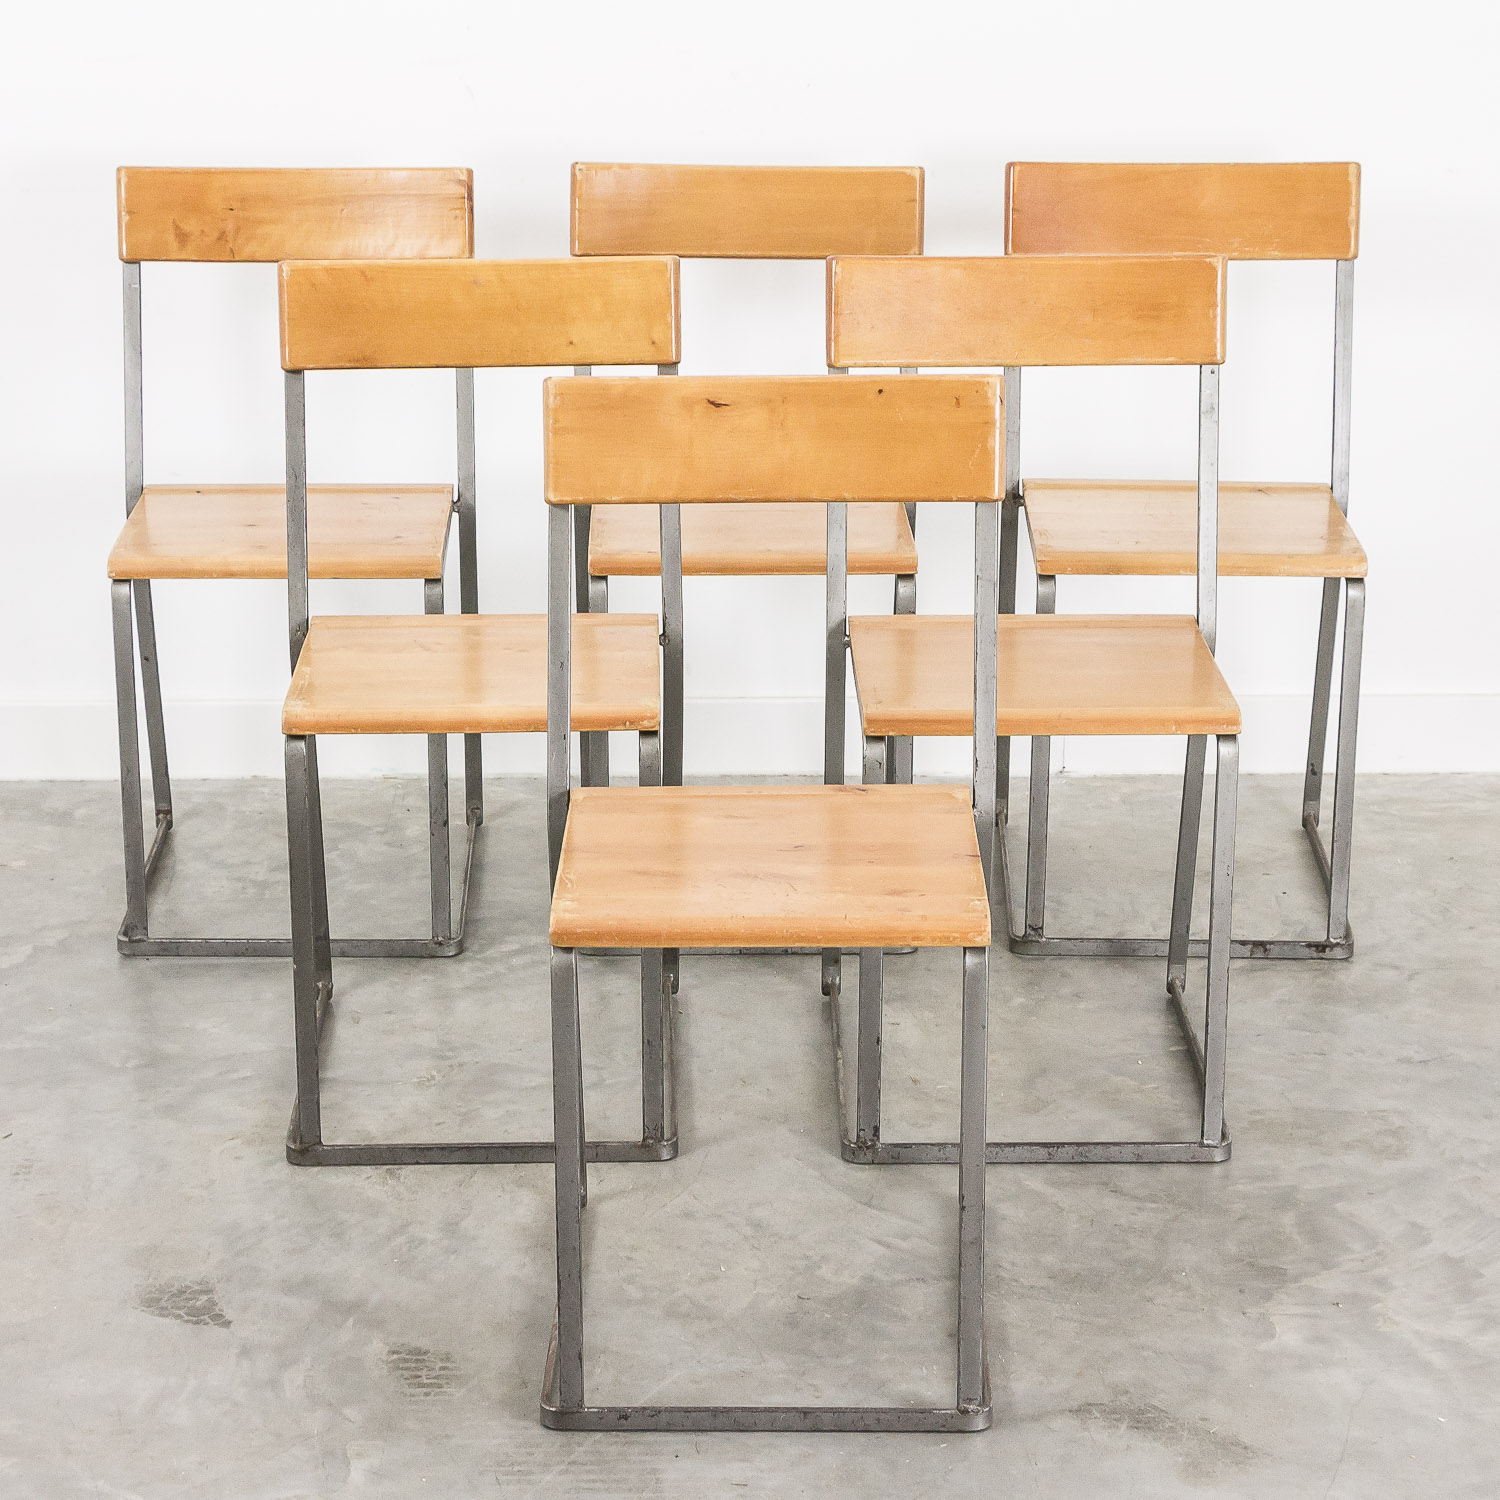 Vintage stackable chairs by Arthur Lindqvist for Grythyttans Stalmobler